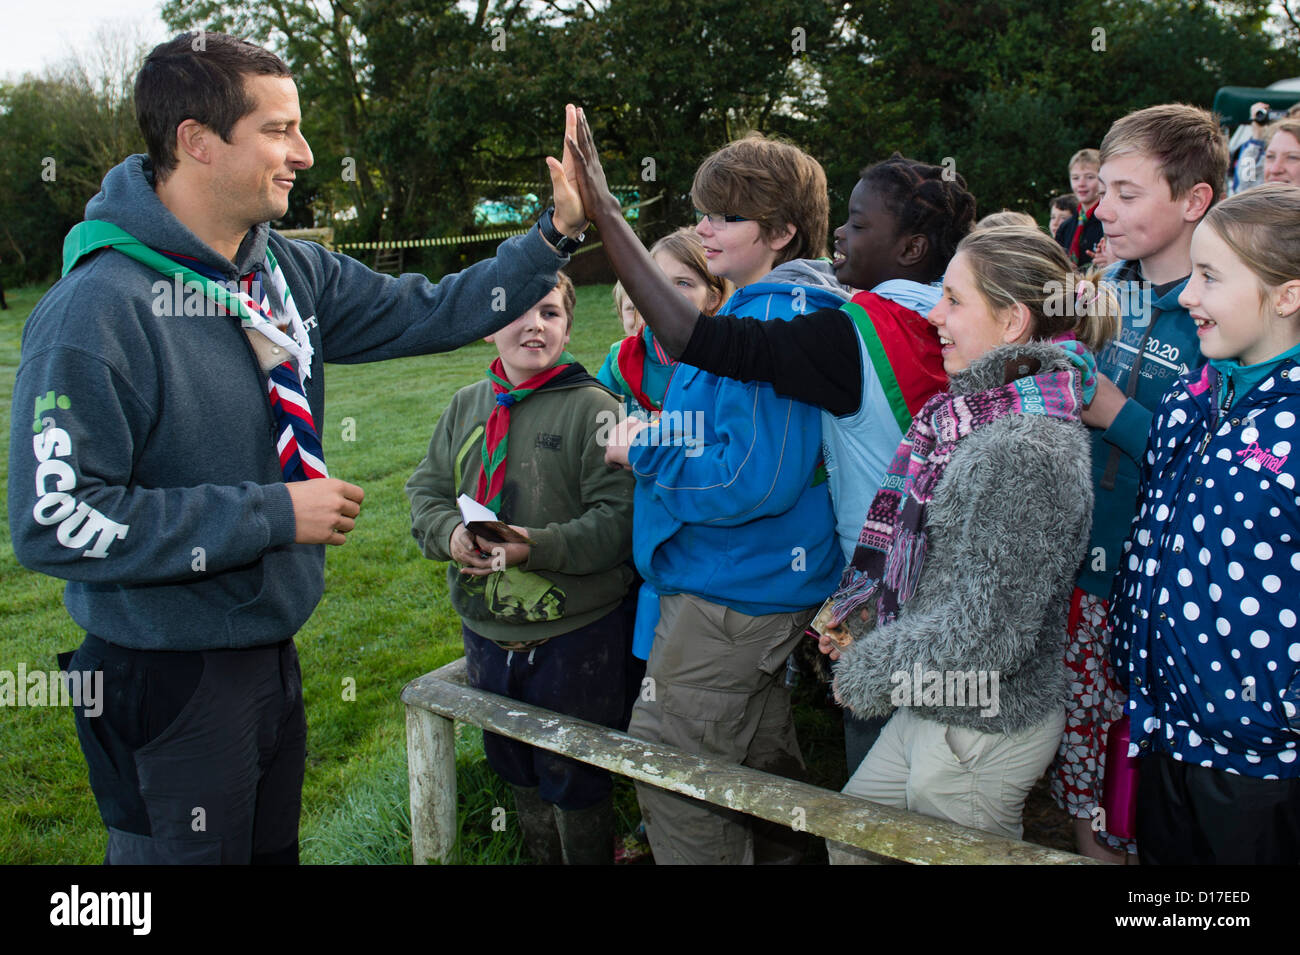 Cub scouts on parade, UK Stock Photo, Royalty Free Image: 57648974 ...